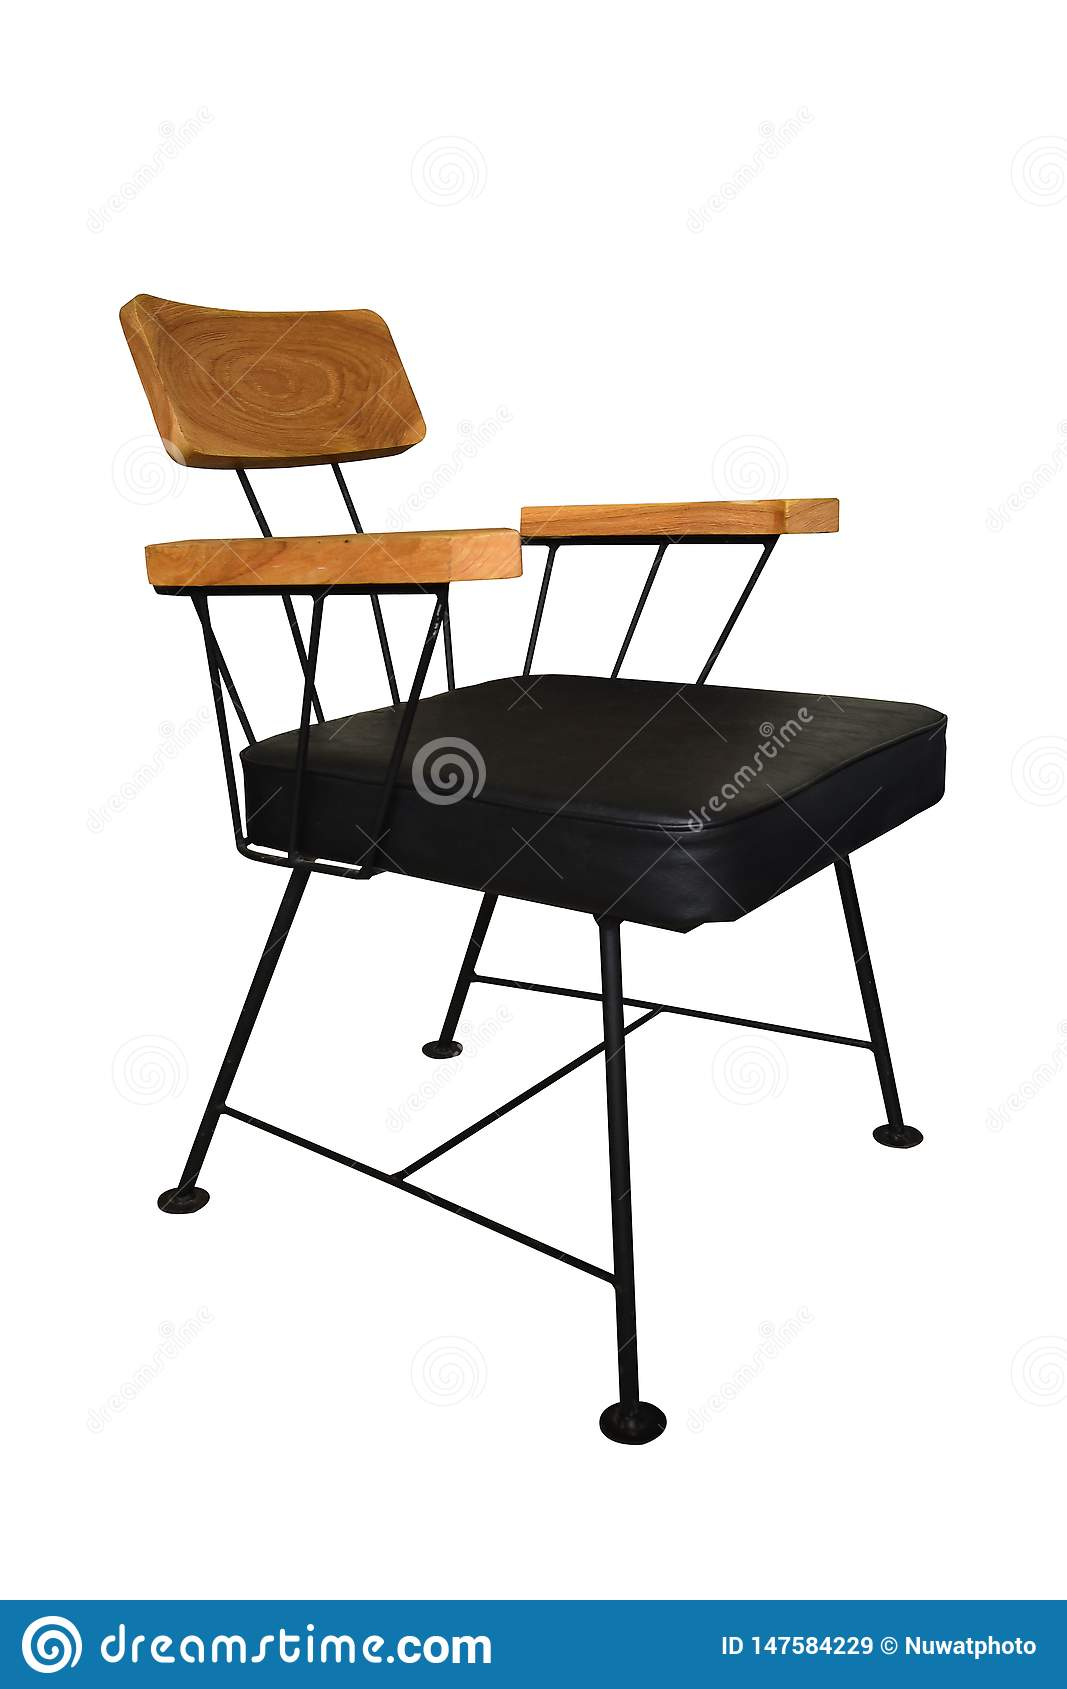 Amazing Modern Wooden Chair Steel Legs Isolated Stock Image Image Squirreltailoven Fun Painted Chair Ideas Images Squirreltailovenorg